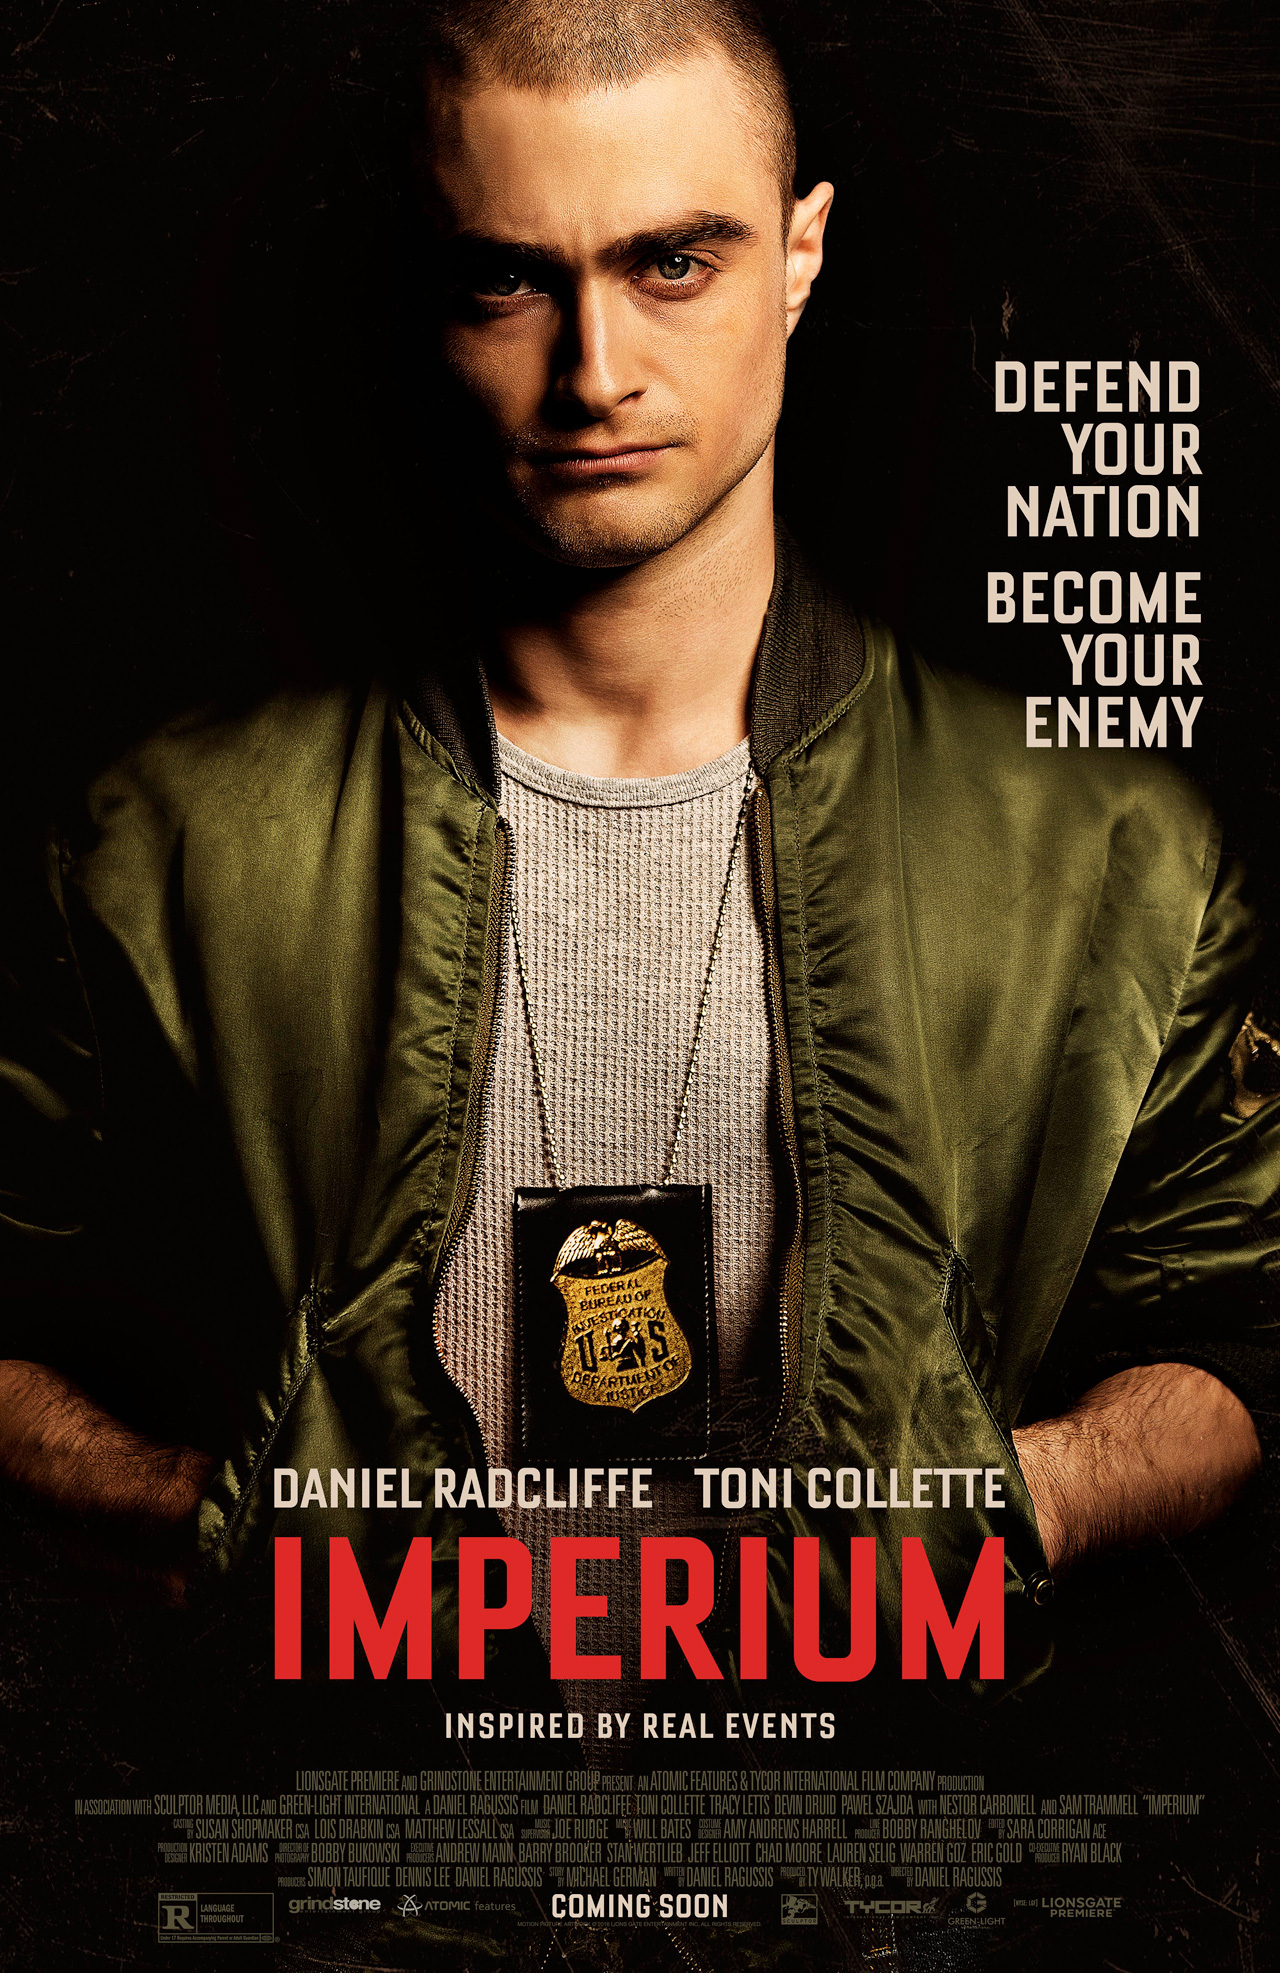 Imperium-Official Poster-05Julho2016